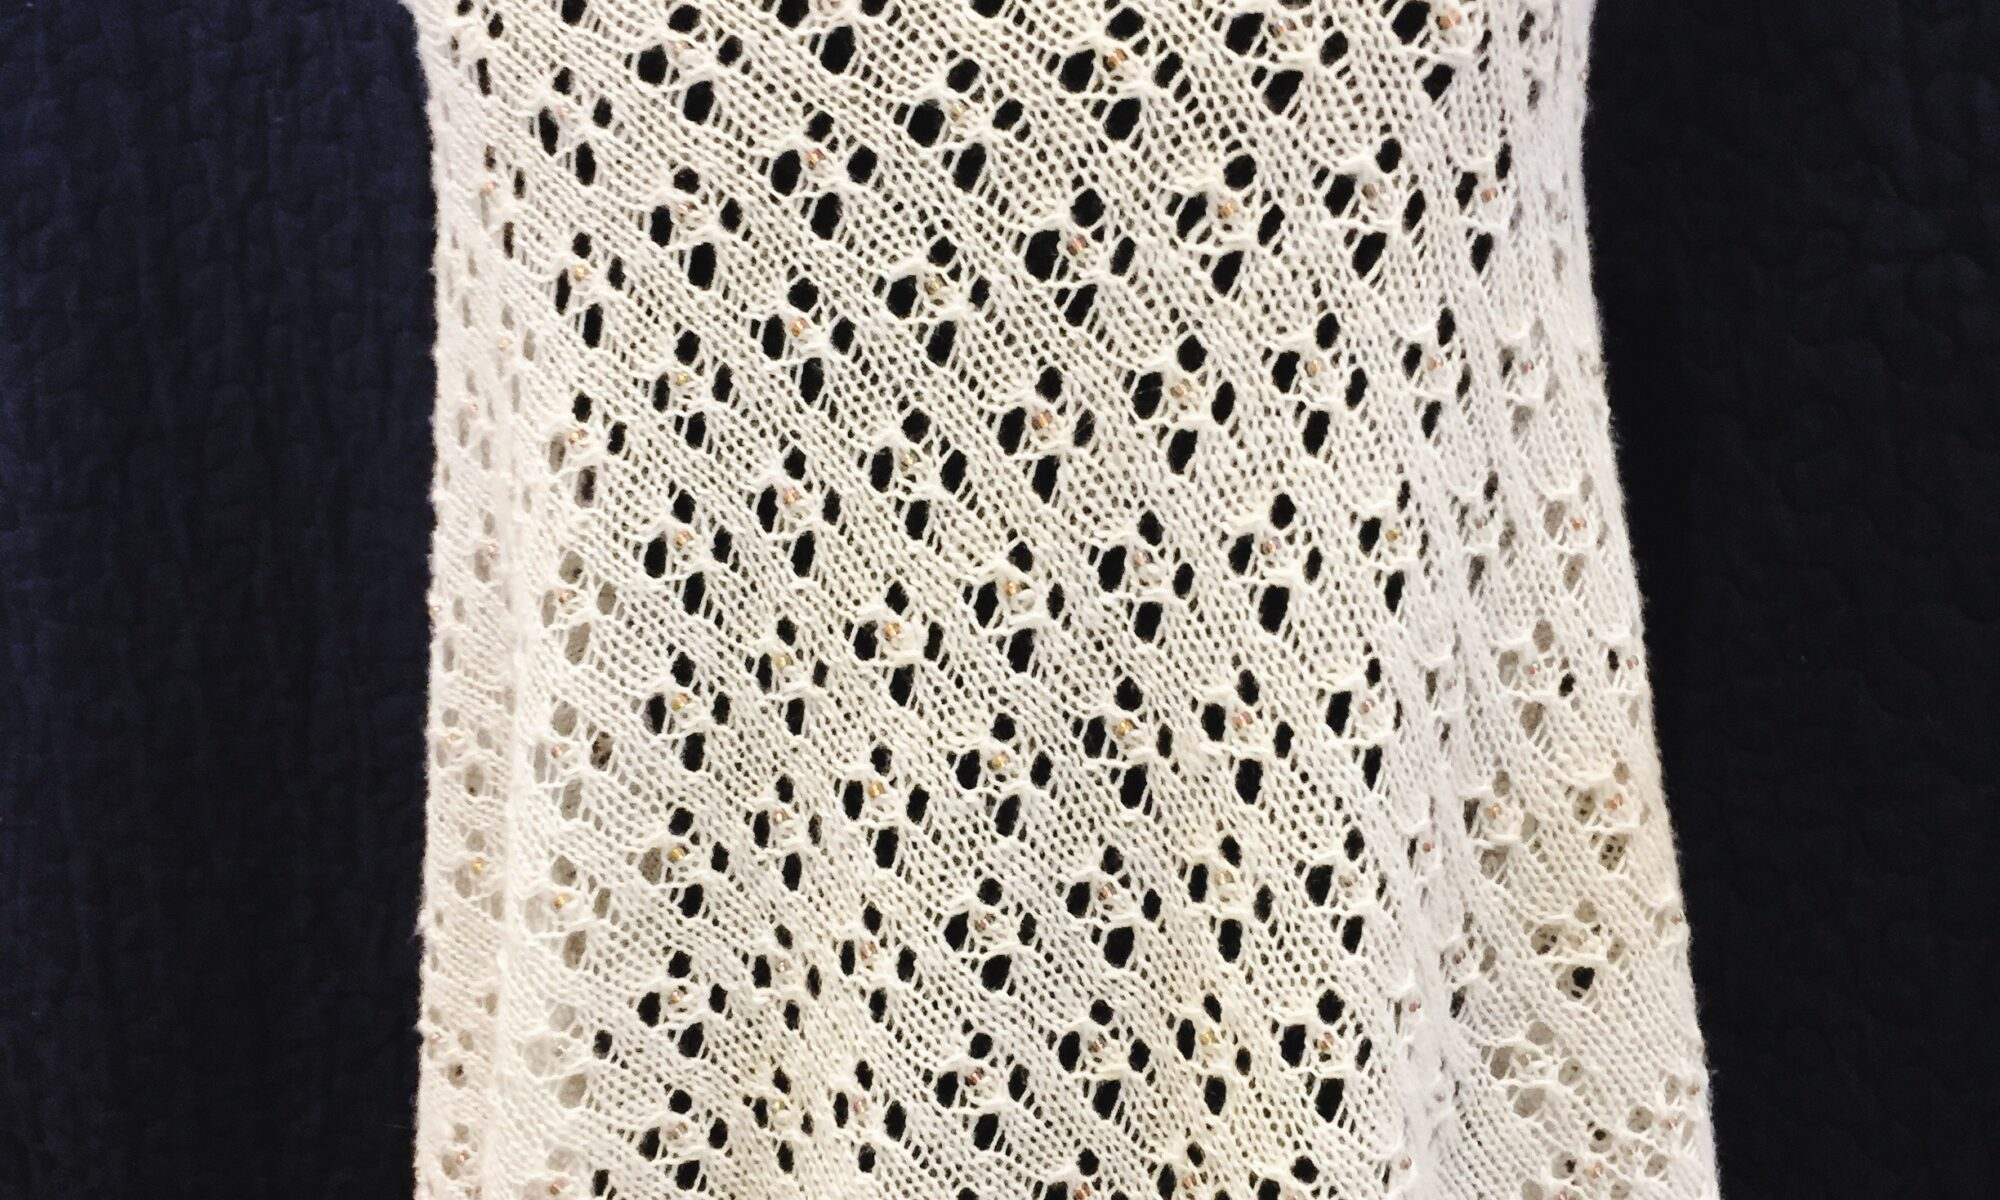 beaded lace shawl on mannequin